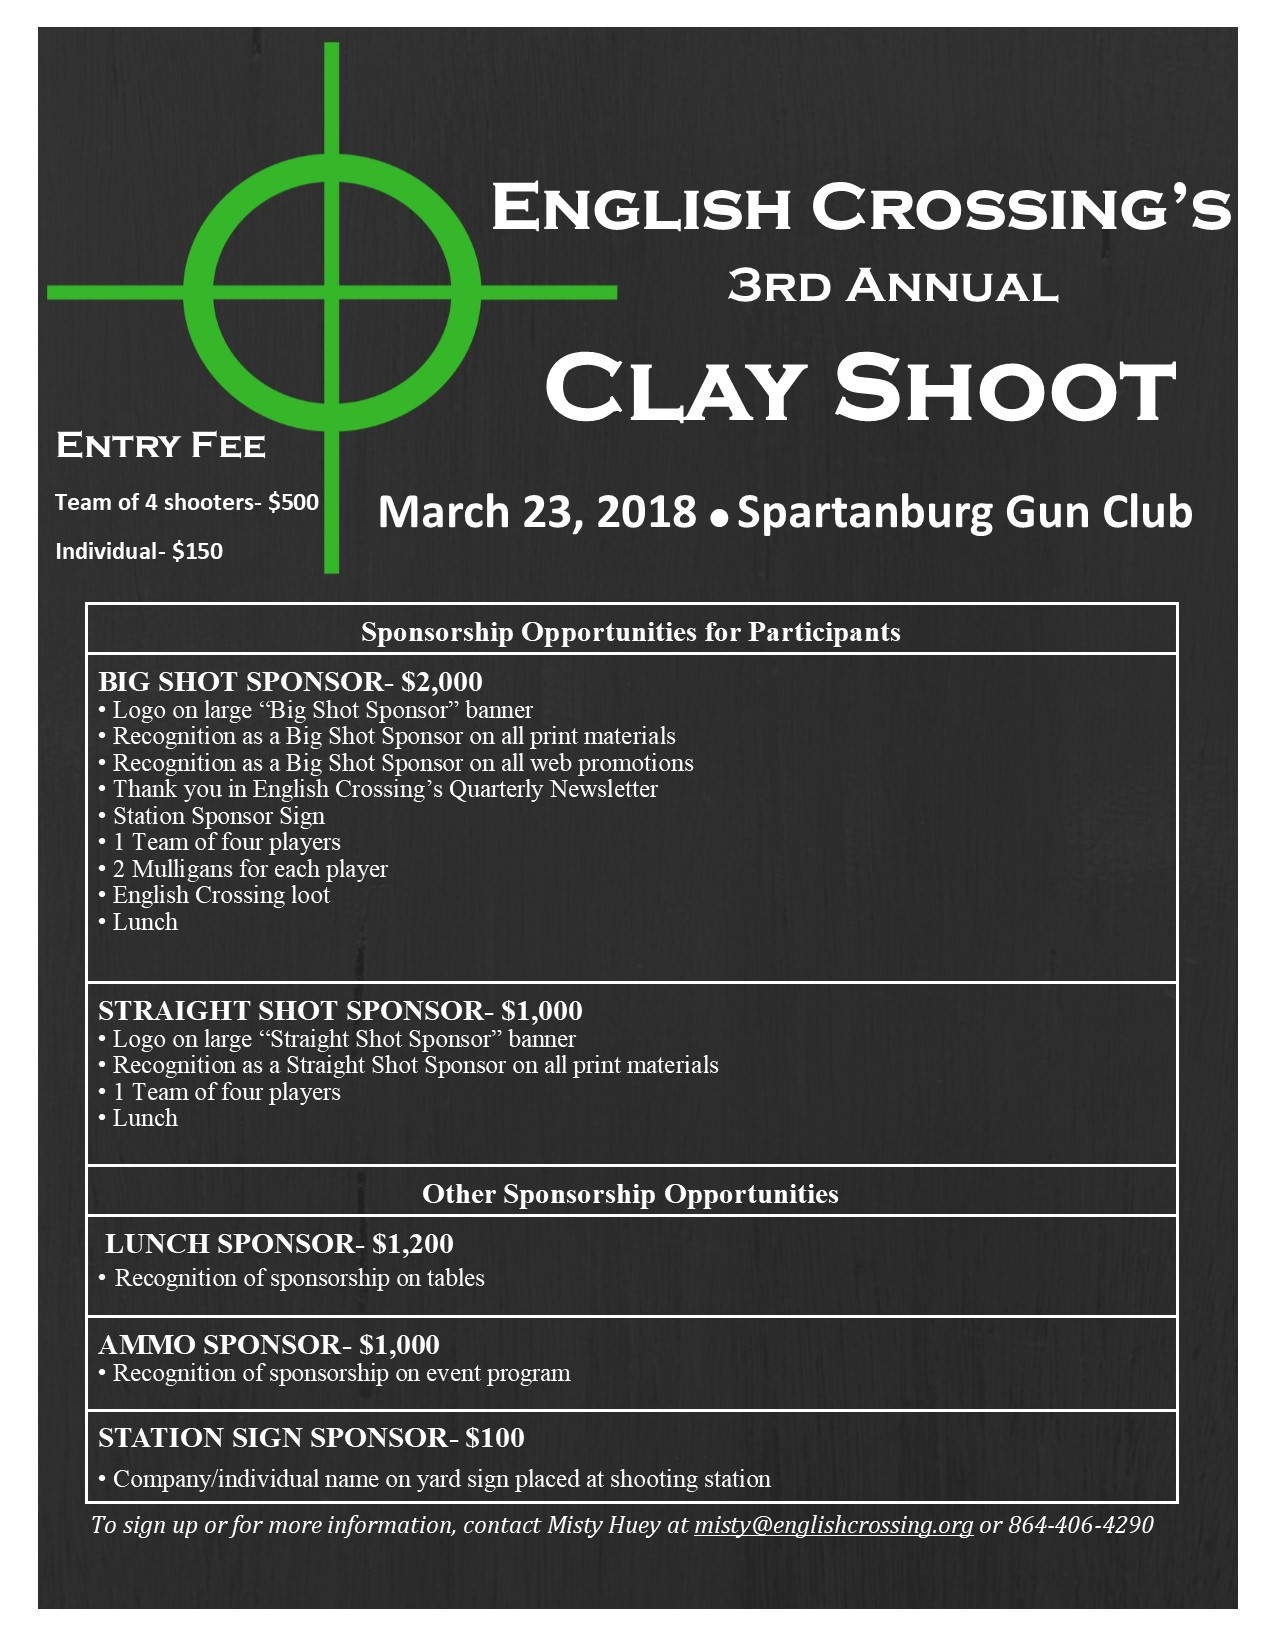 Clay shoot flyer